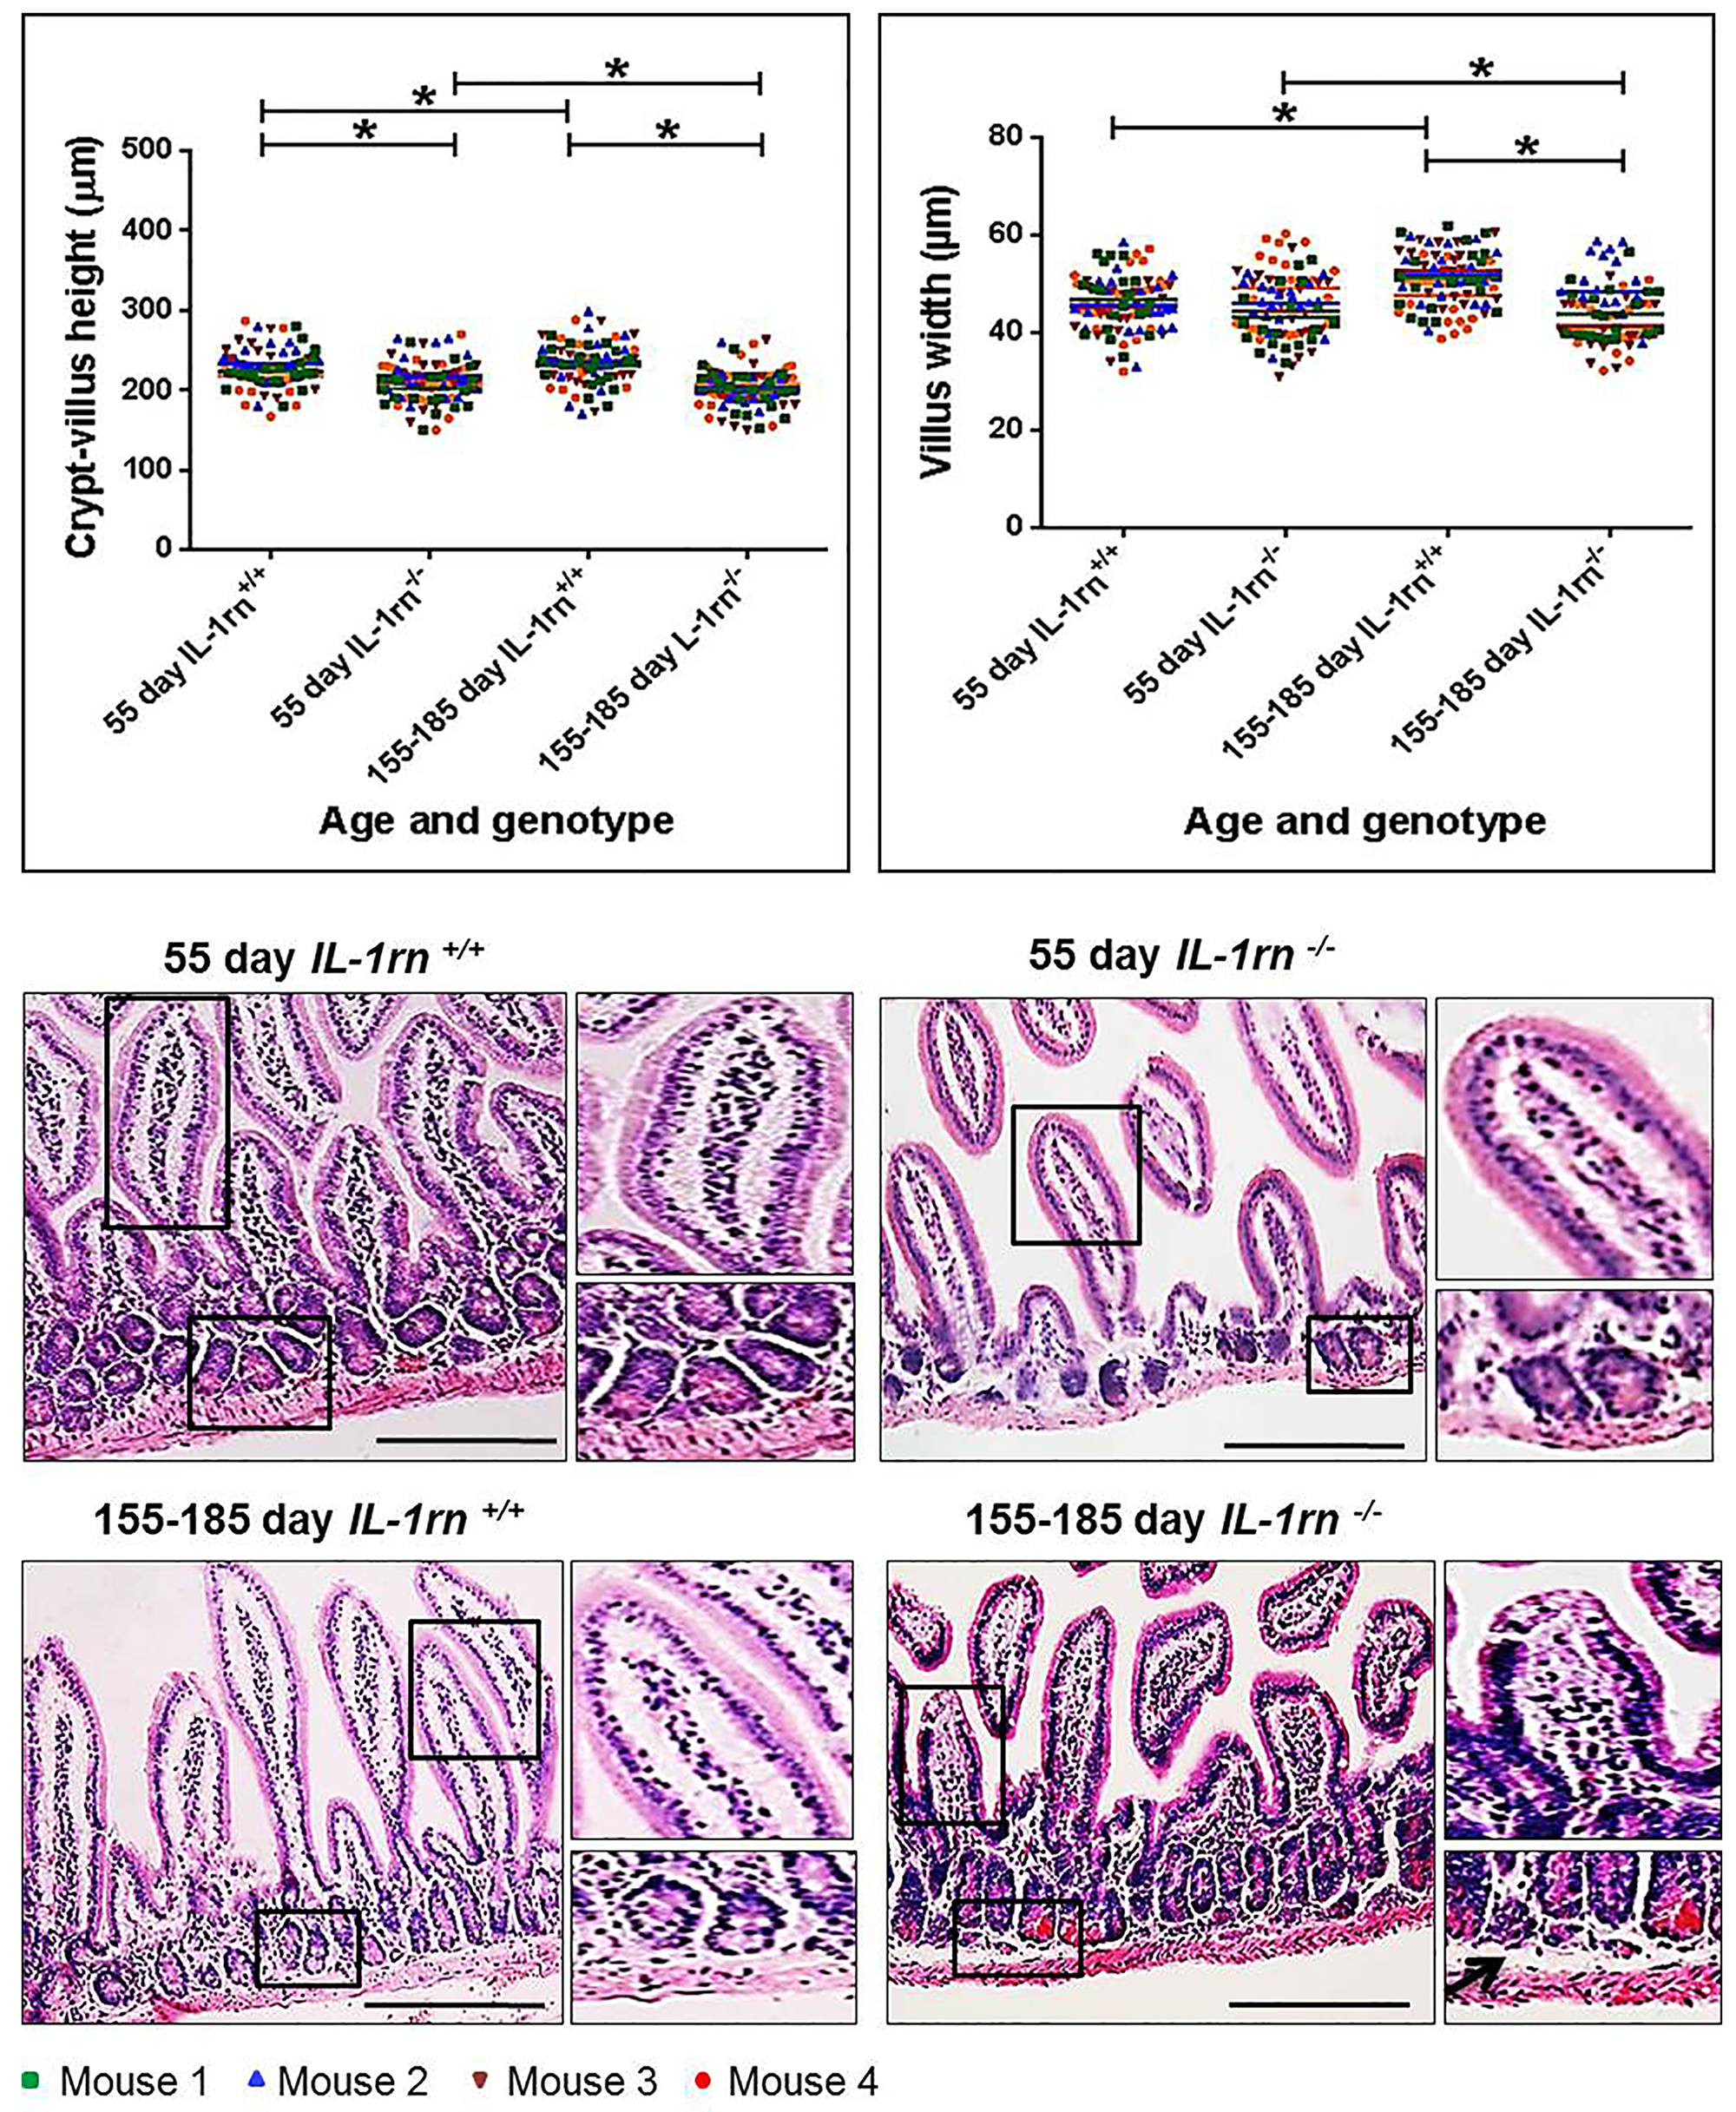 Histological analysis and morphology of the intact well-oriented crypt-villus axis heights and villus widths of Ileum in the 55 day old IL-1rn-/- mice and 155-185 day old IL-1rn-/- mice compared to age-matched wild-type mice.